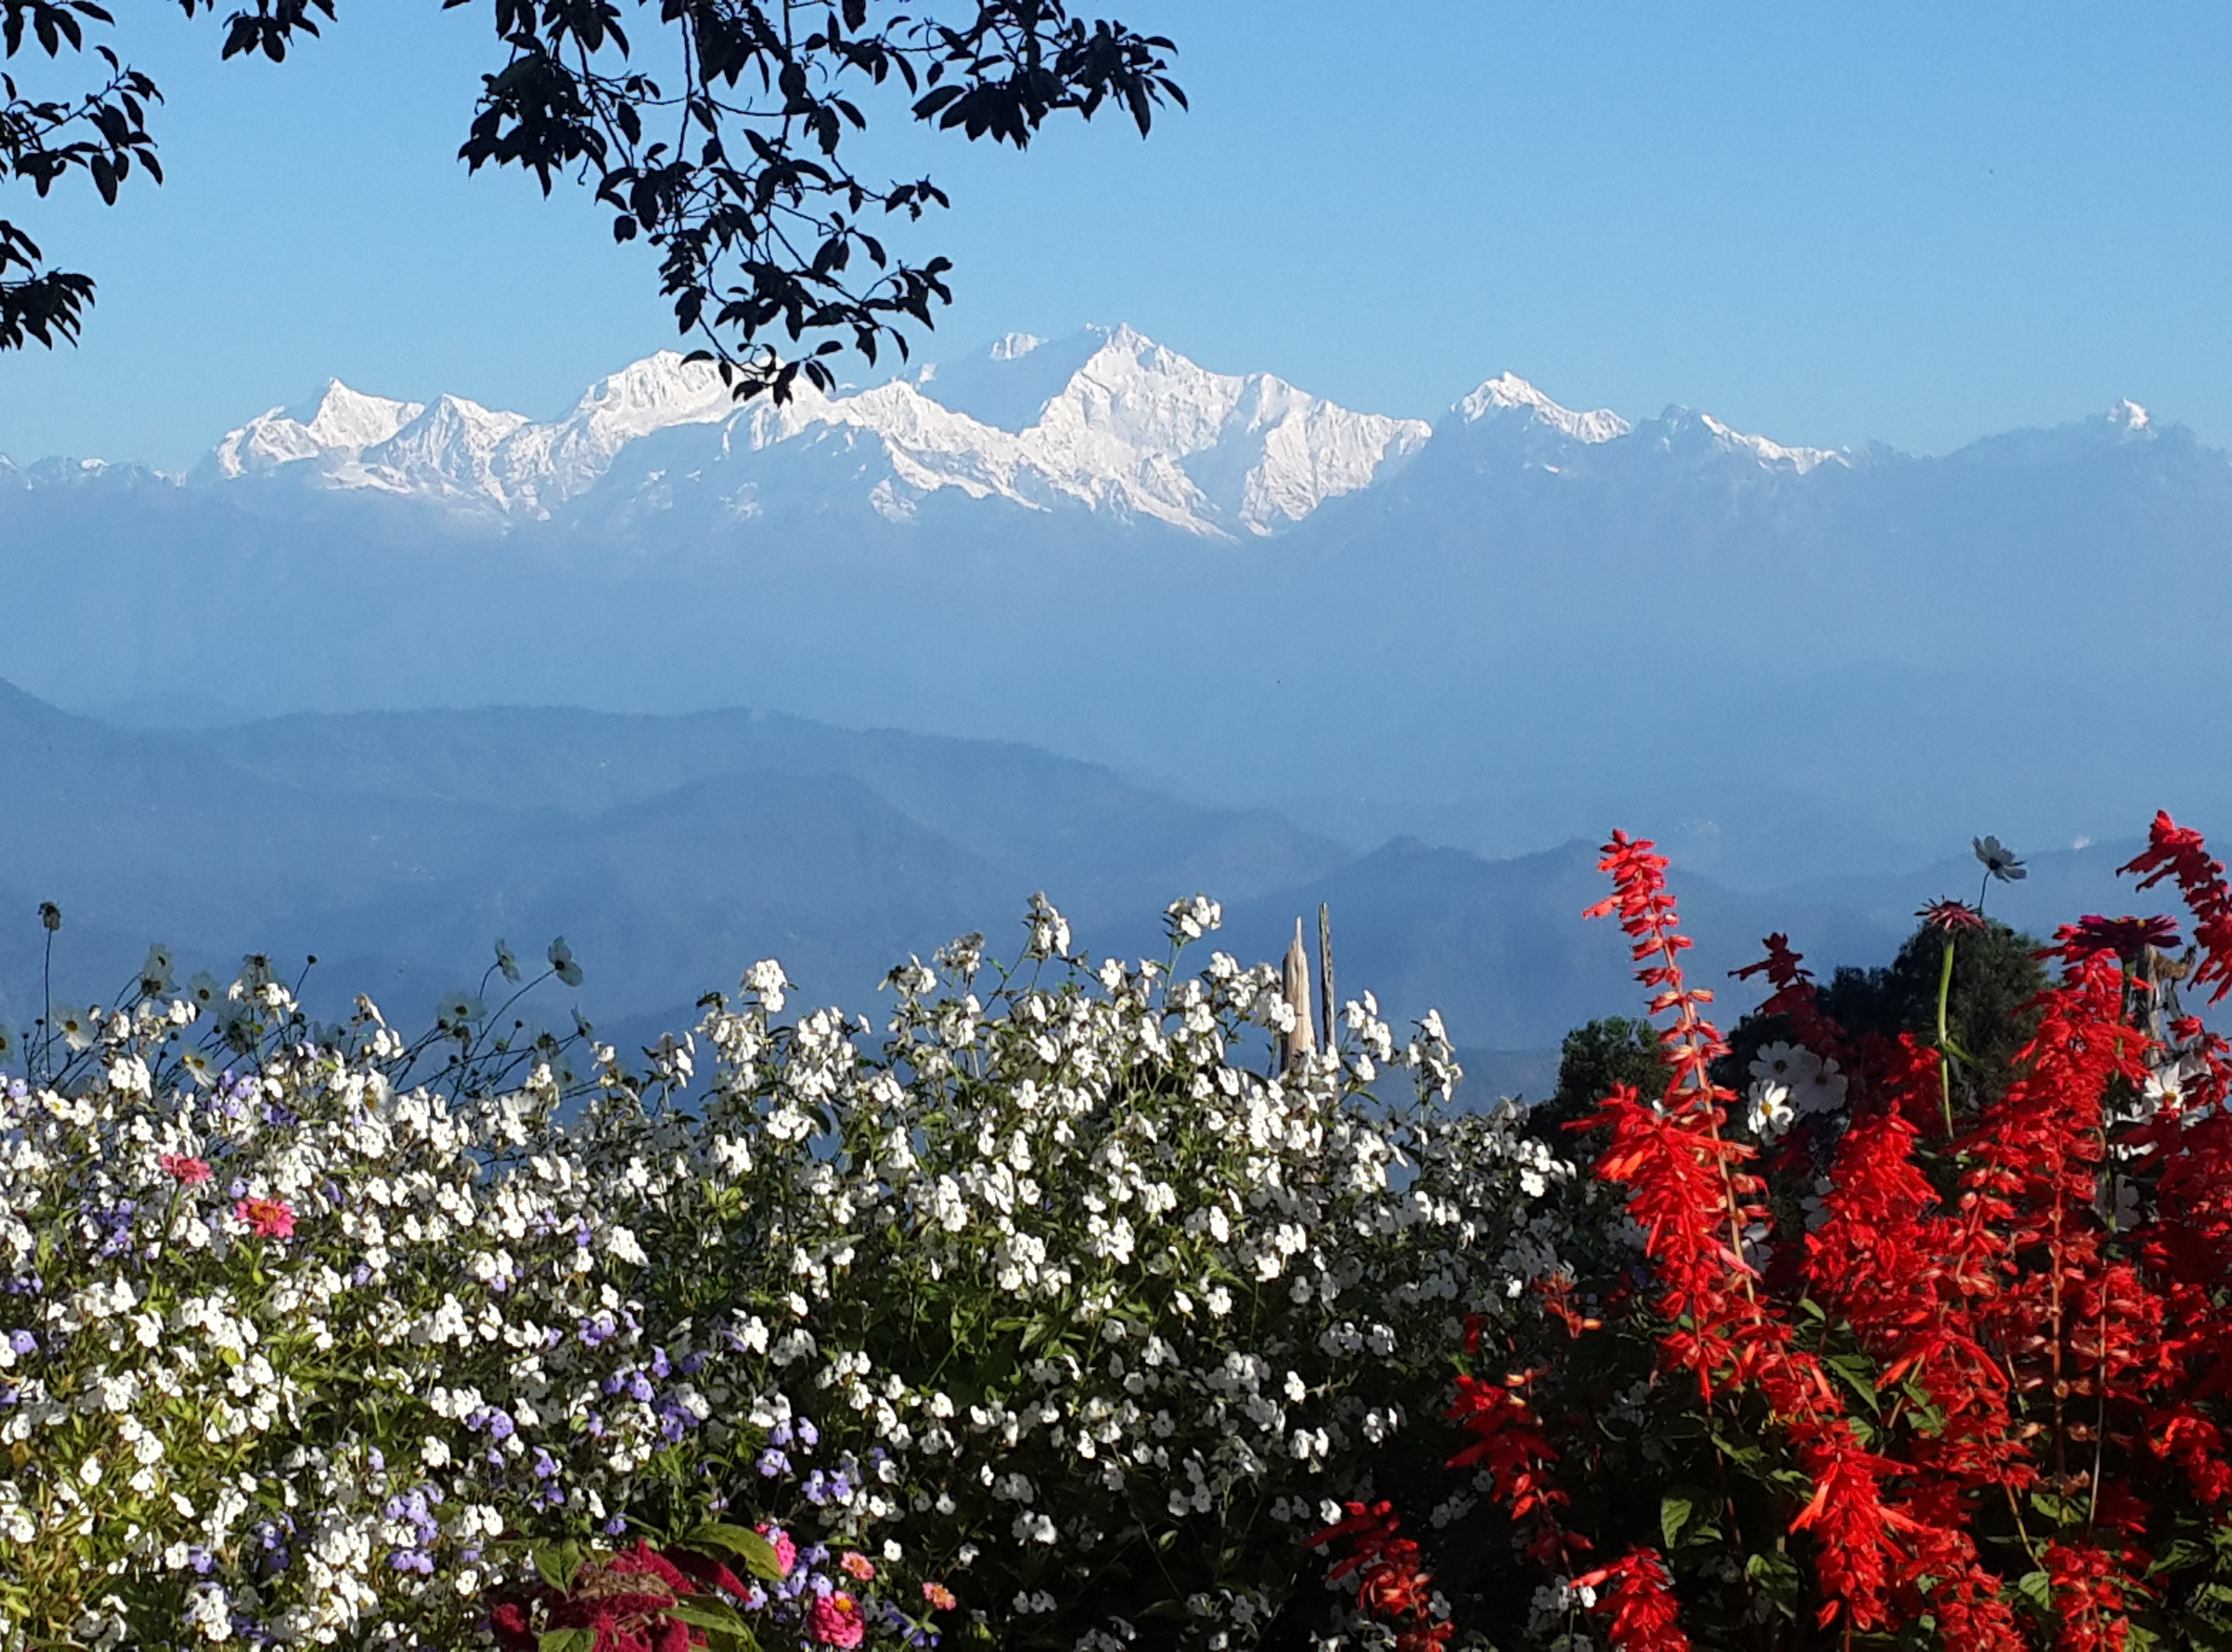 Biodiversity of Eastern Himalayas: A Treasure trove of learning for students